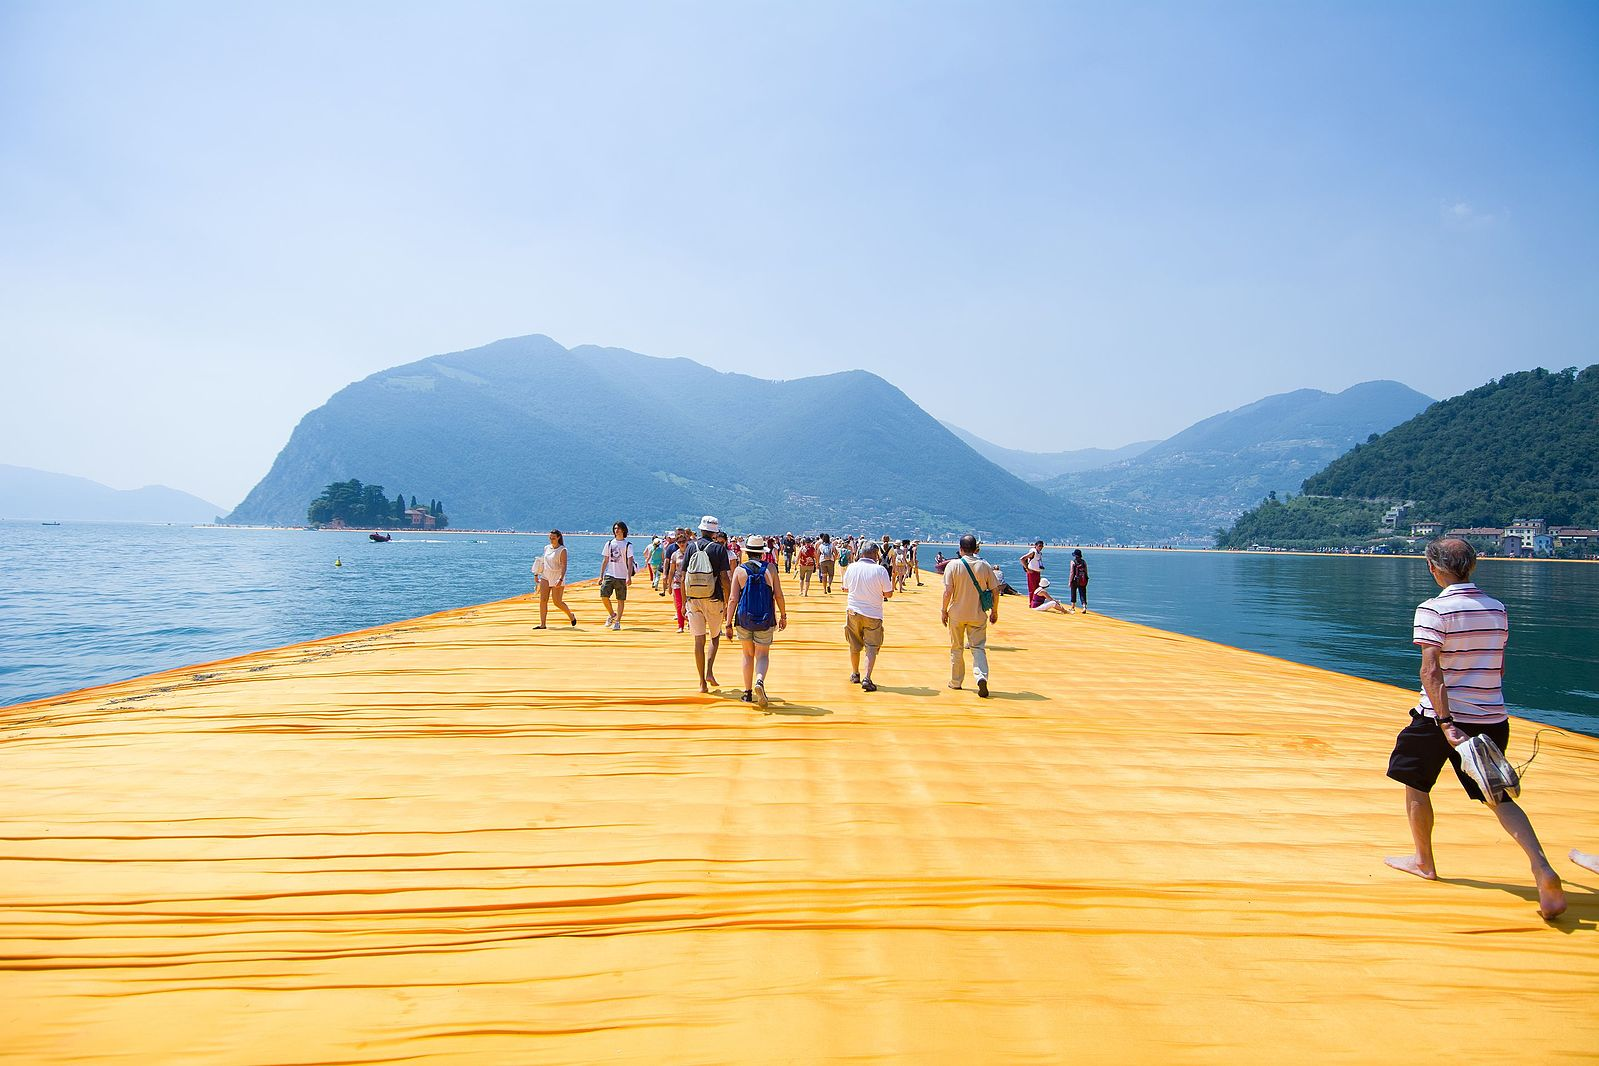 Iseo_Floating_Piers_7.jpg